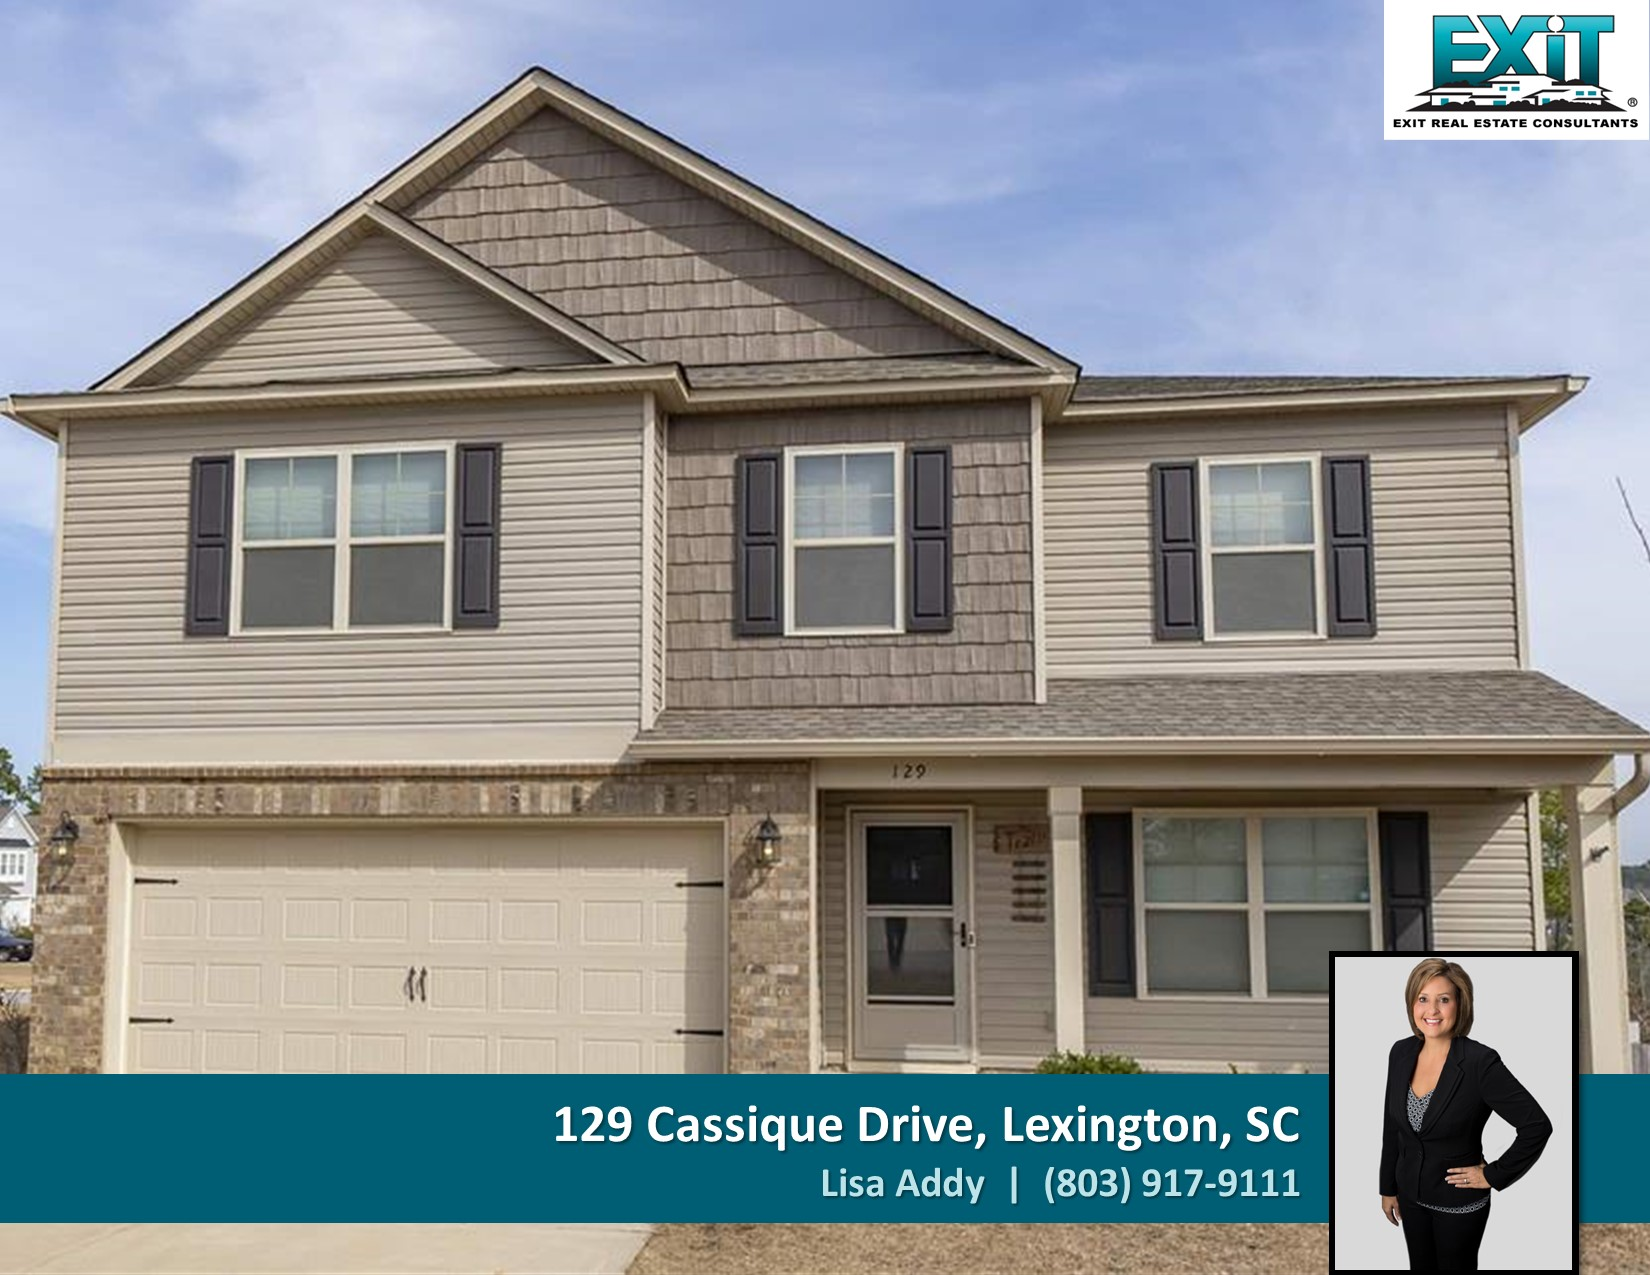 Just listed in Cassique